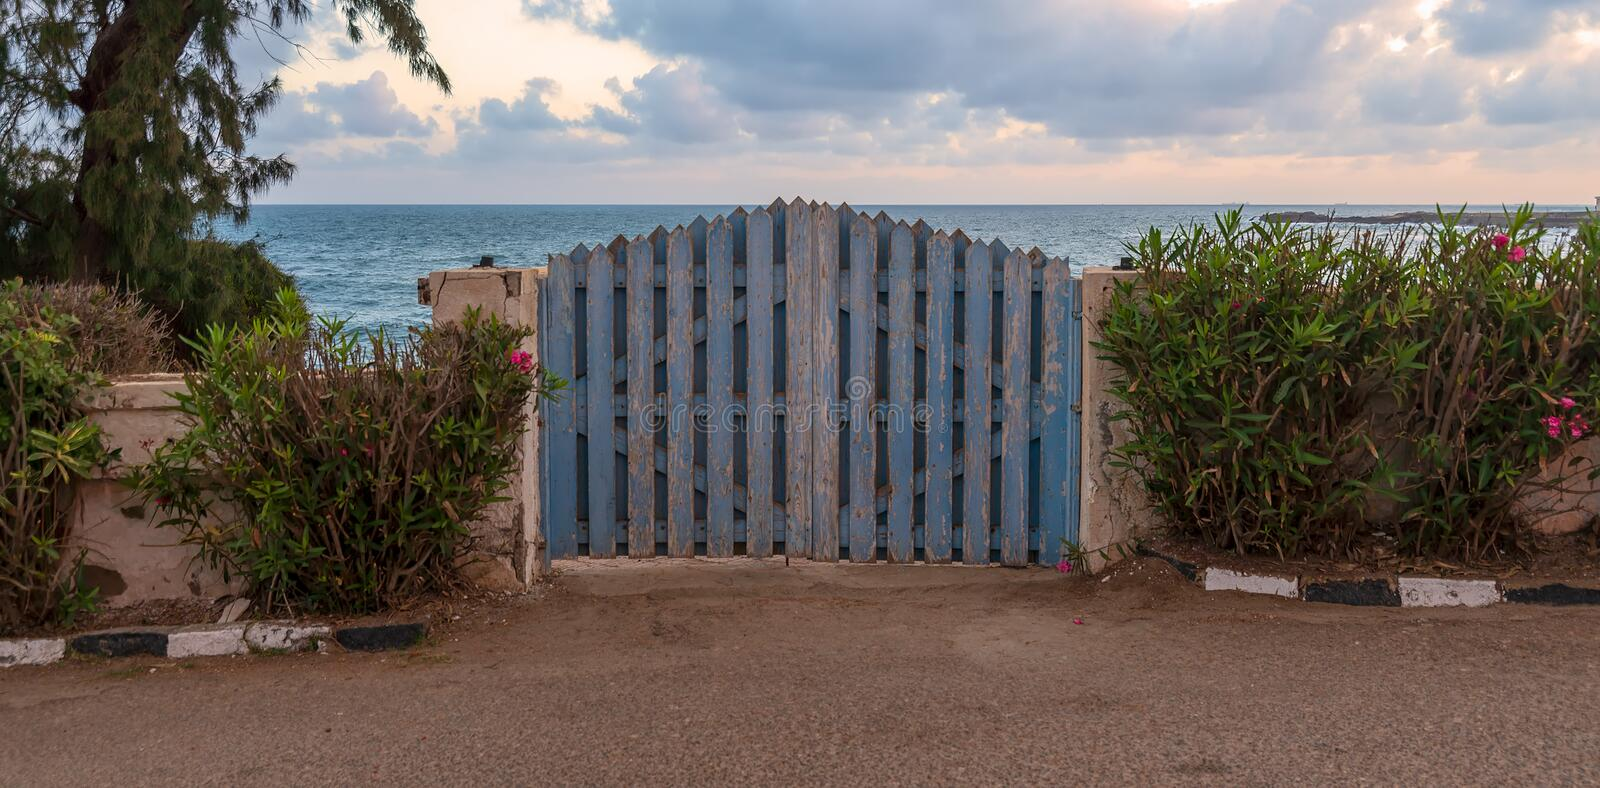 Curved weathered blue wooden garden gate with green bushes at both sides and background of sea and partly cloudy sky at sunrise royalty free stock images